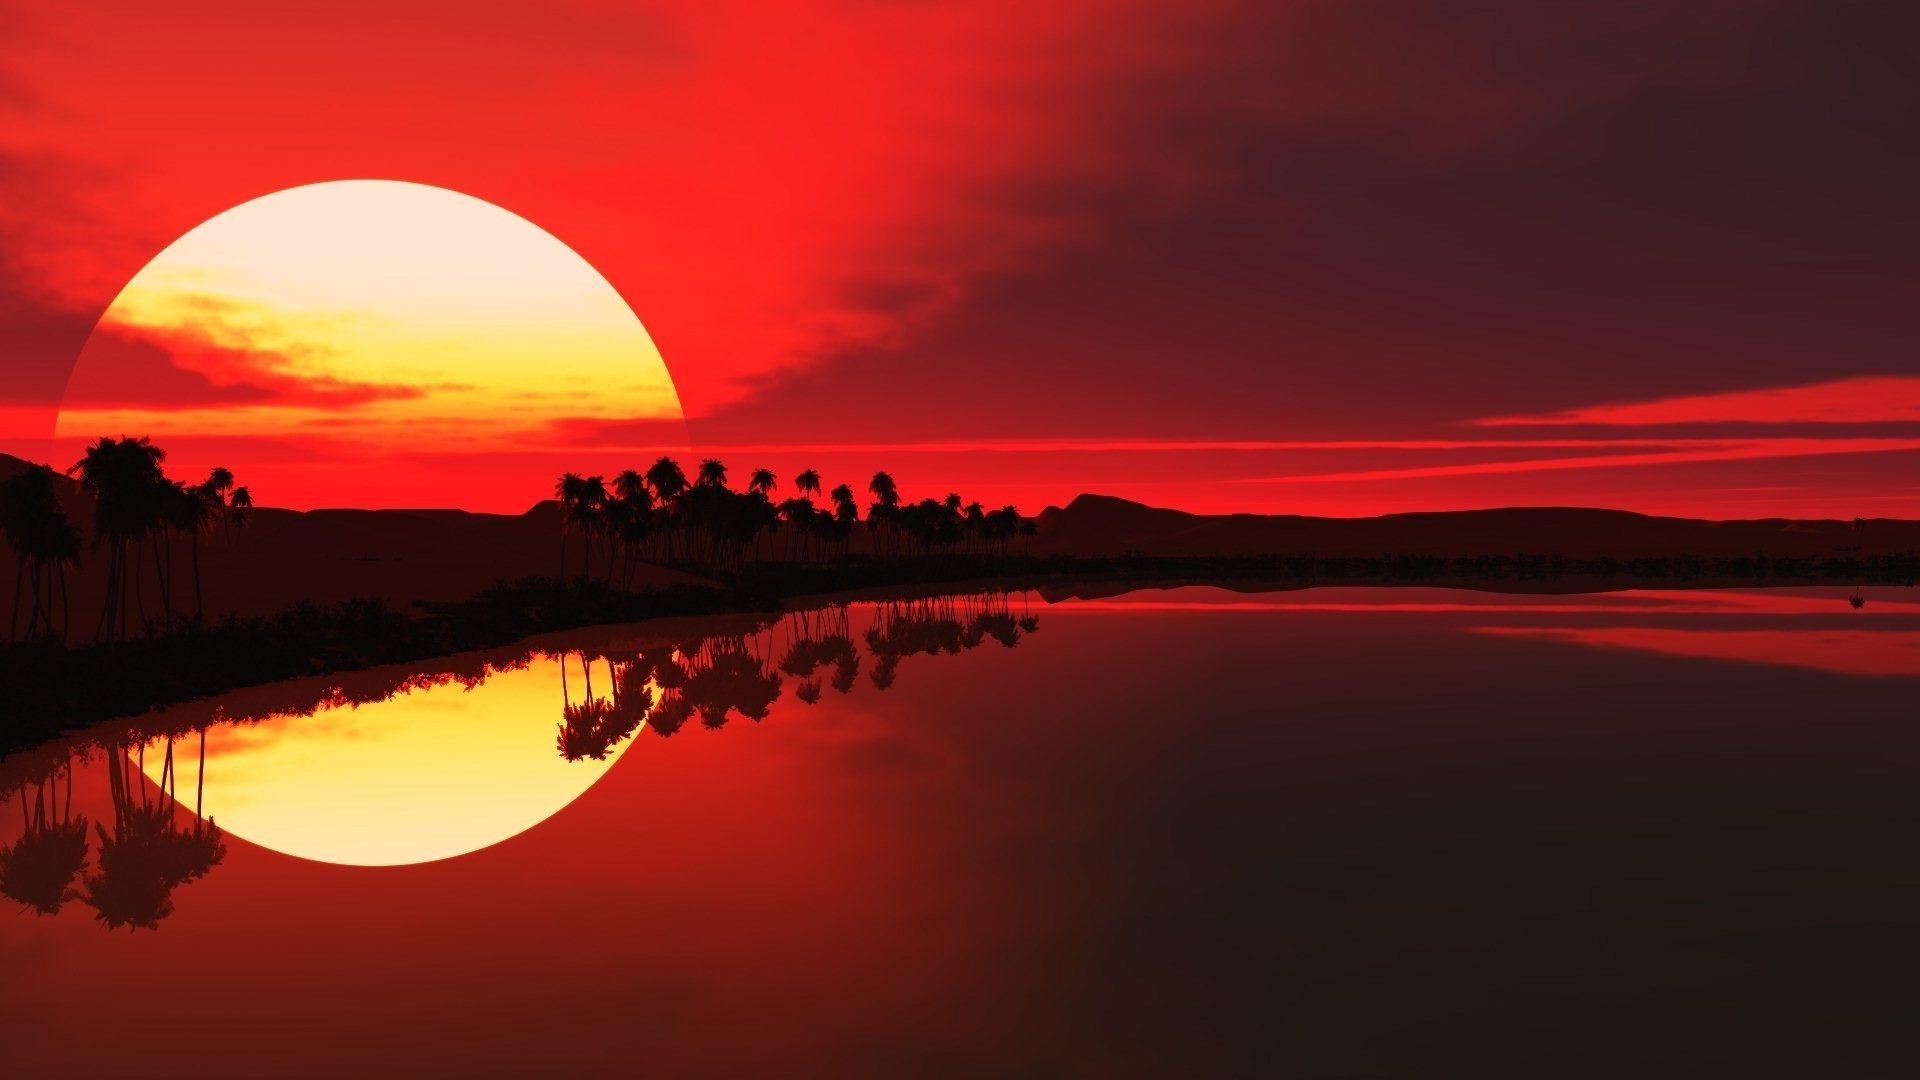 the sunset and sunrise sunset dawn evening sun dusk sky water silhouette nature landscape reflection